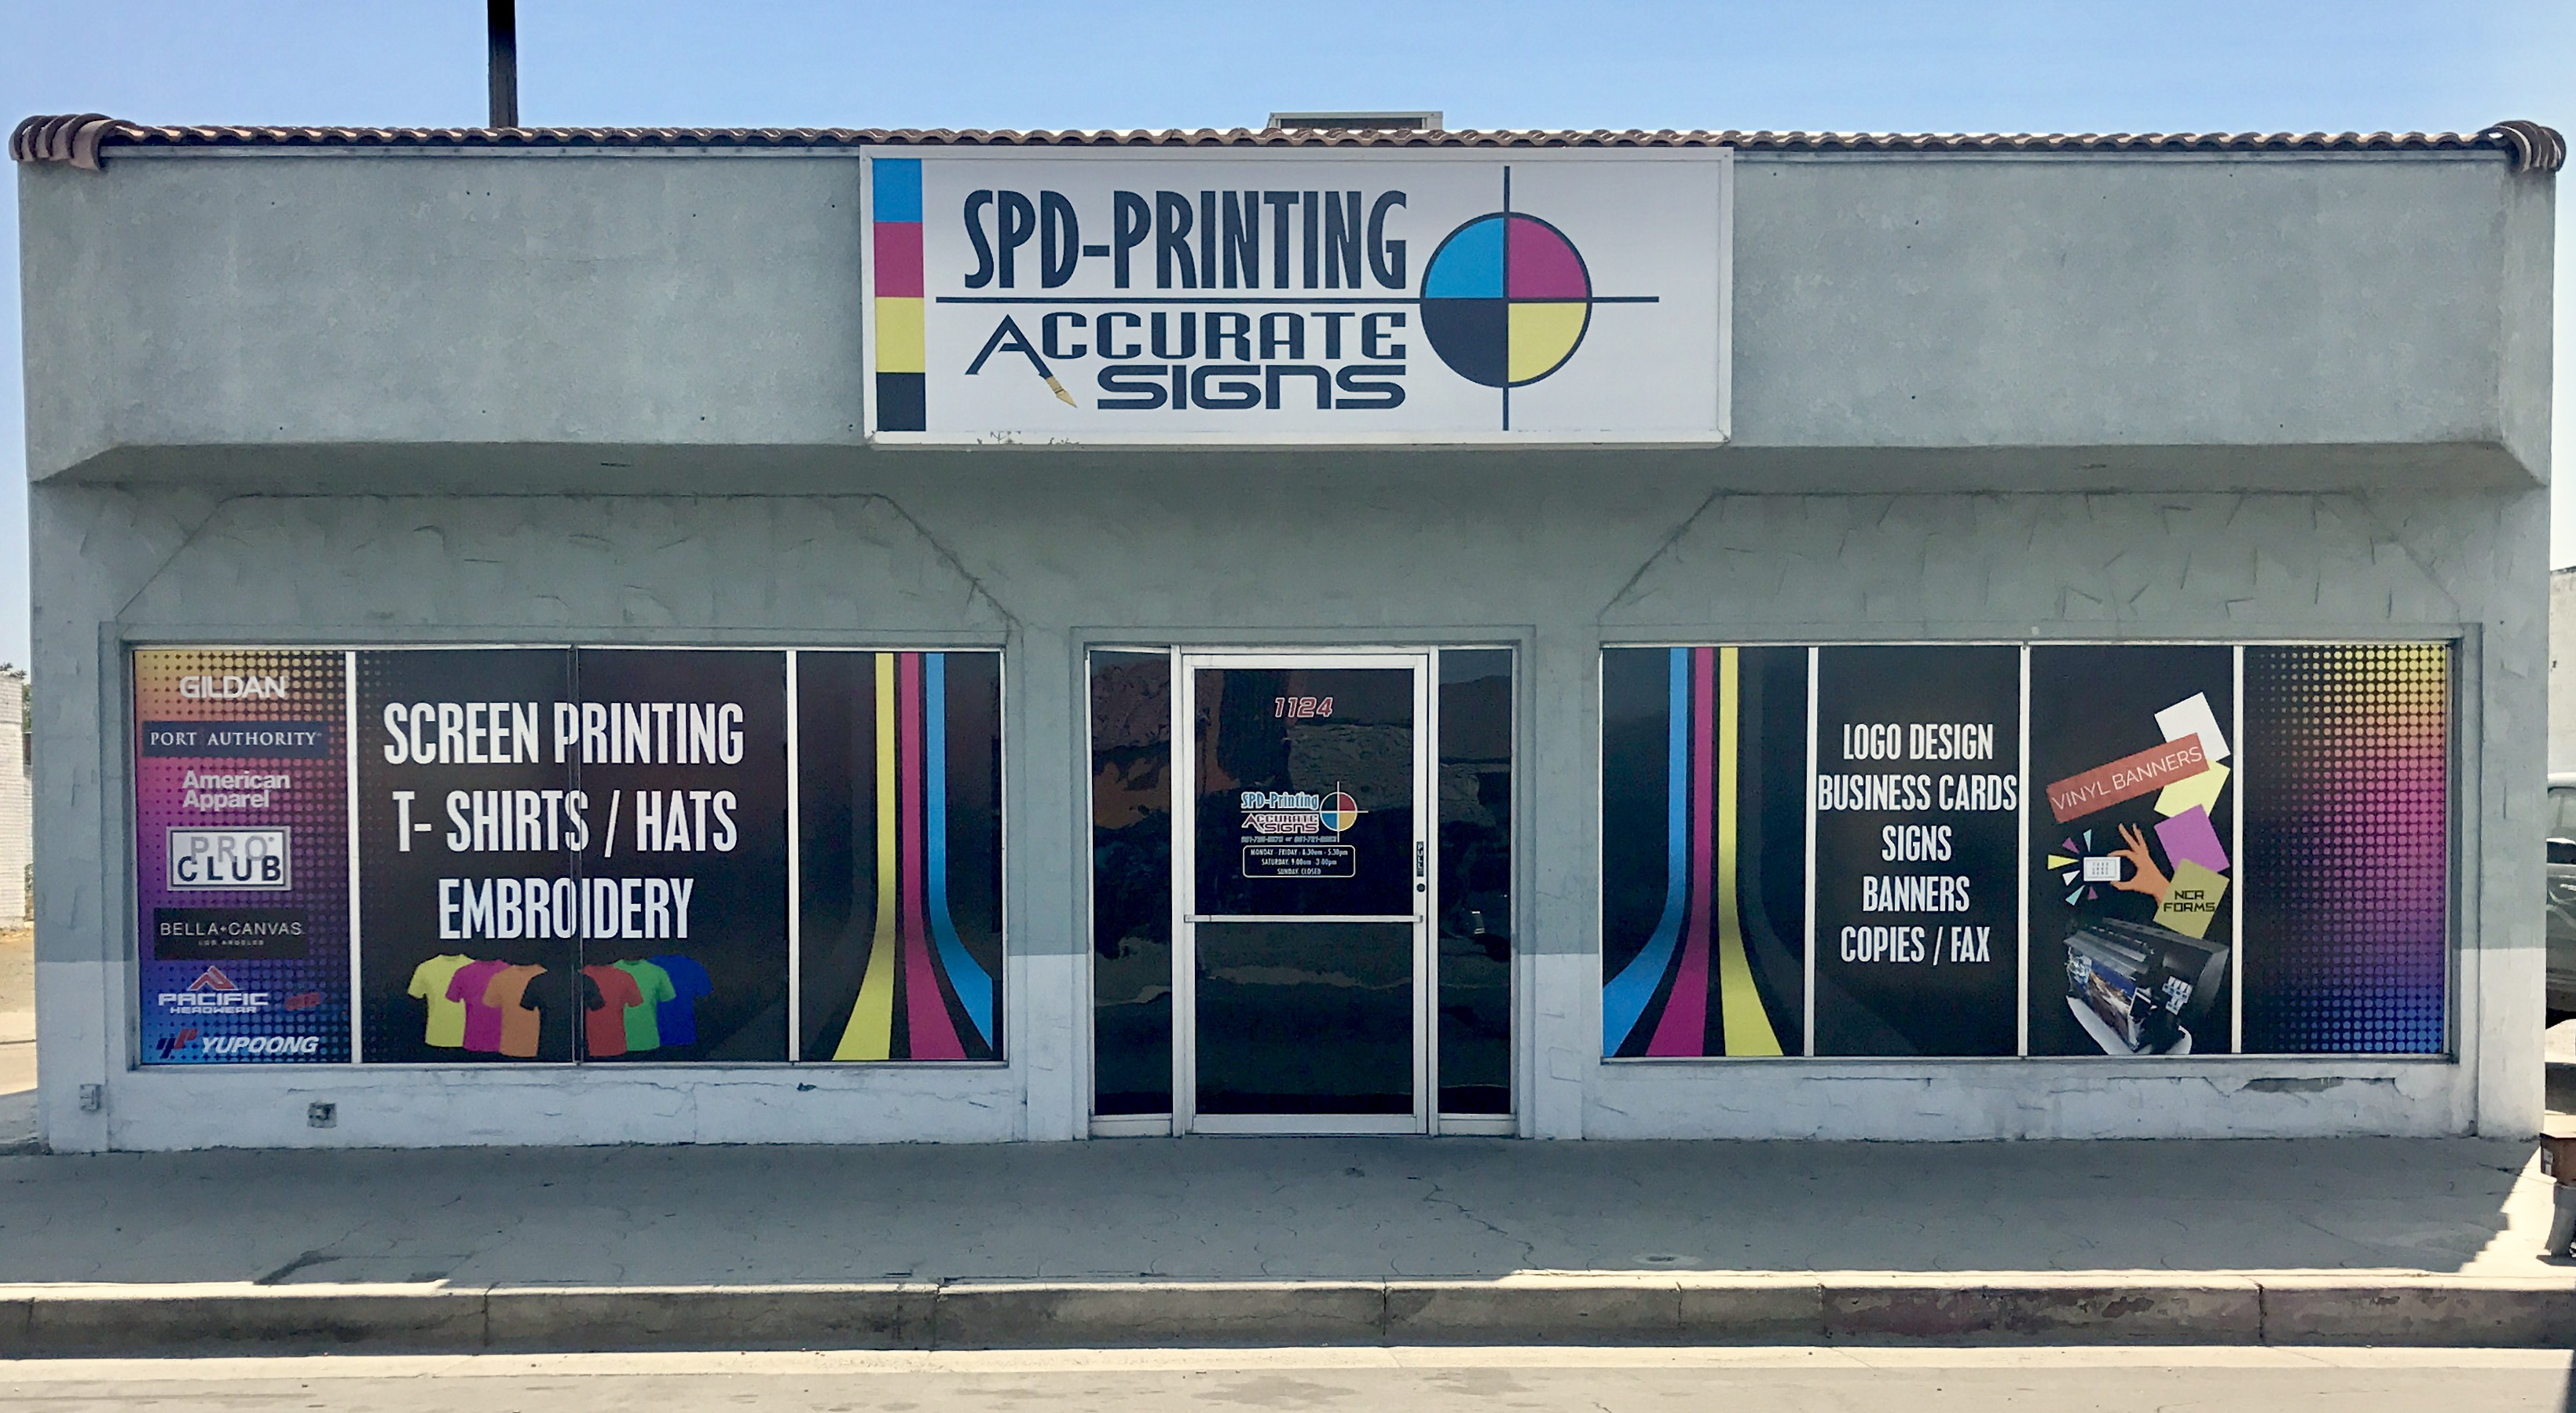 Spd printing accurate signs 1124 high st delano ca 93215 yp com